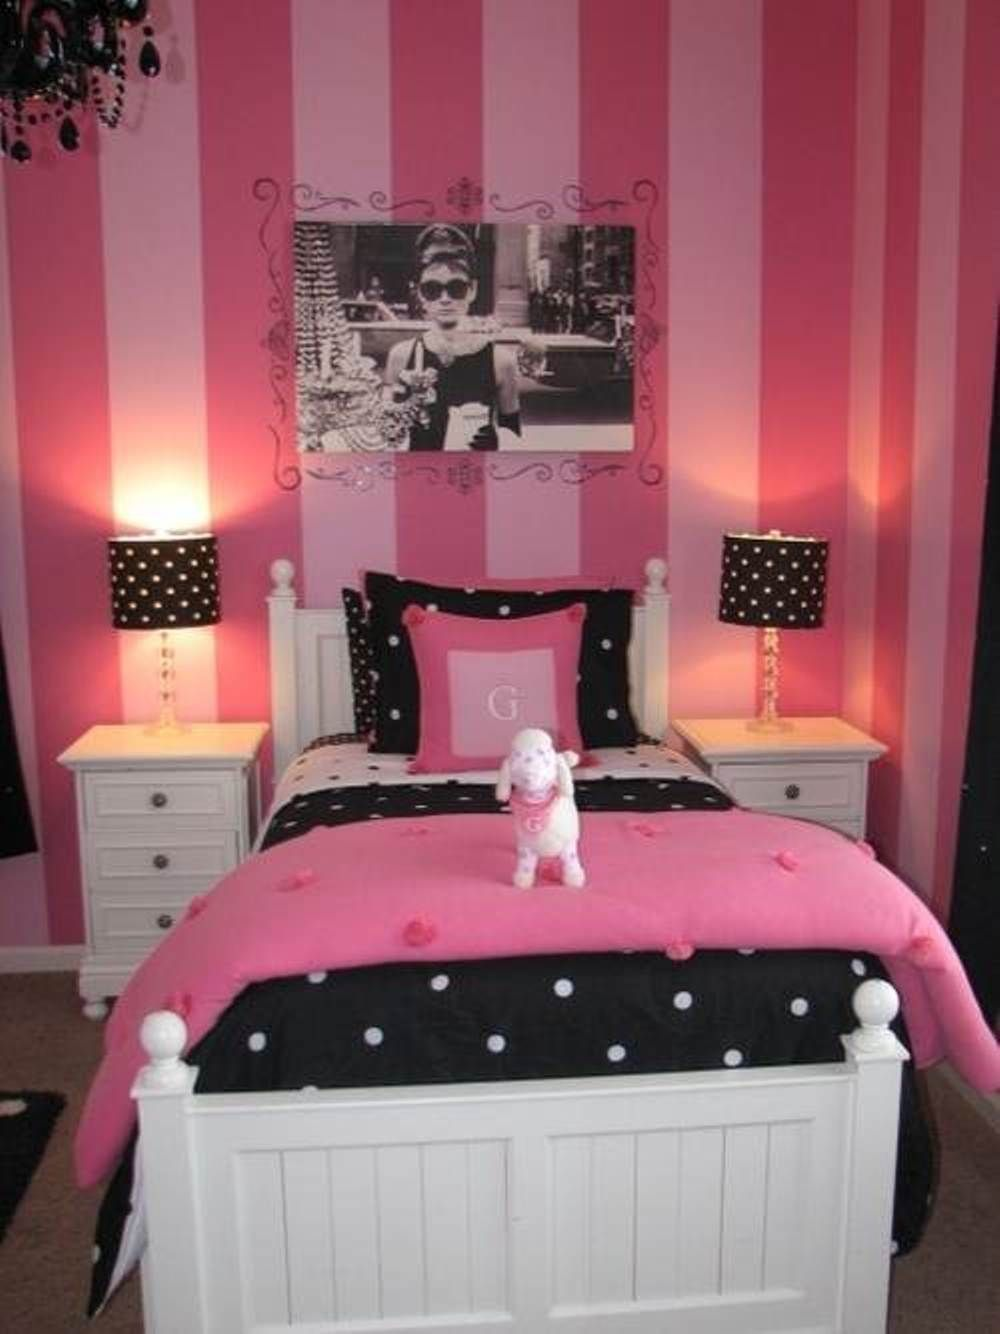 47 Adorable Interior Decorating Ideas for Girls Bedroom | All in One ...